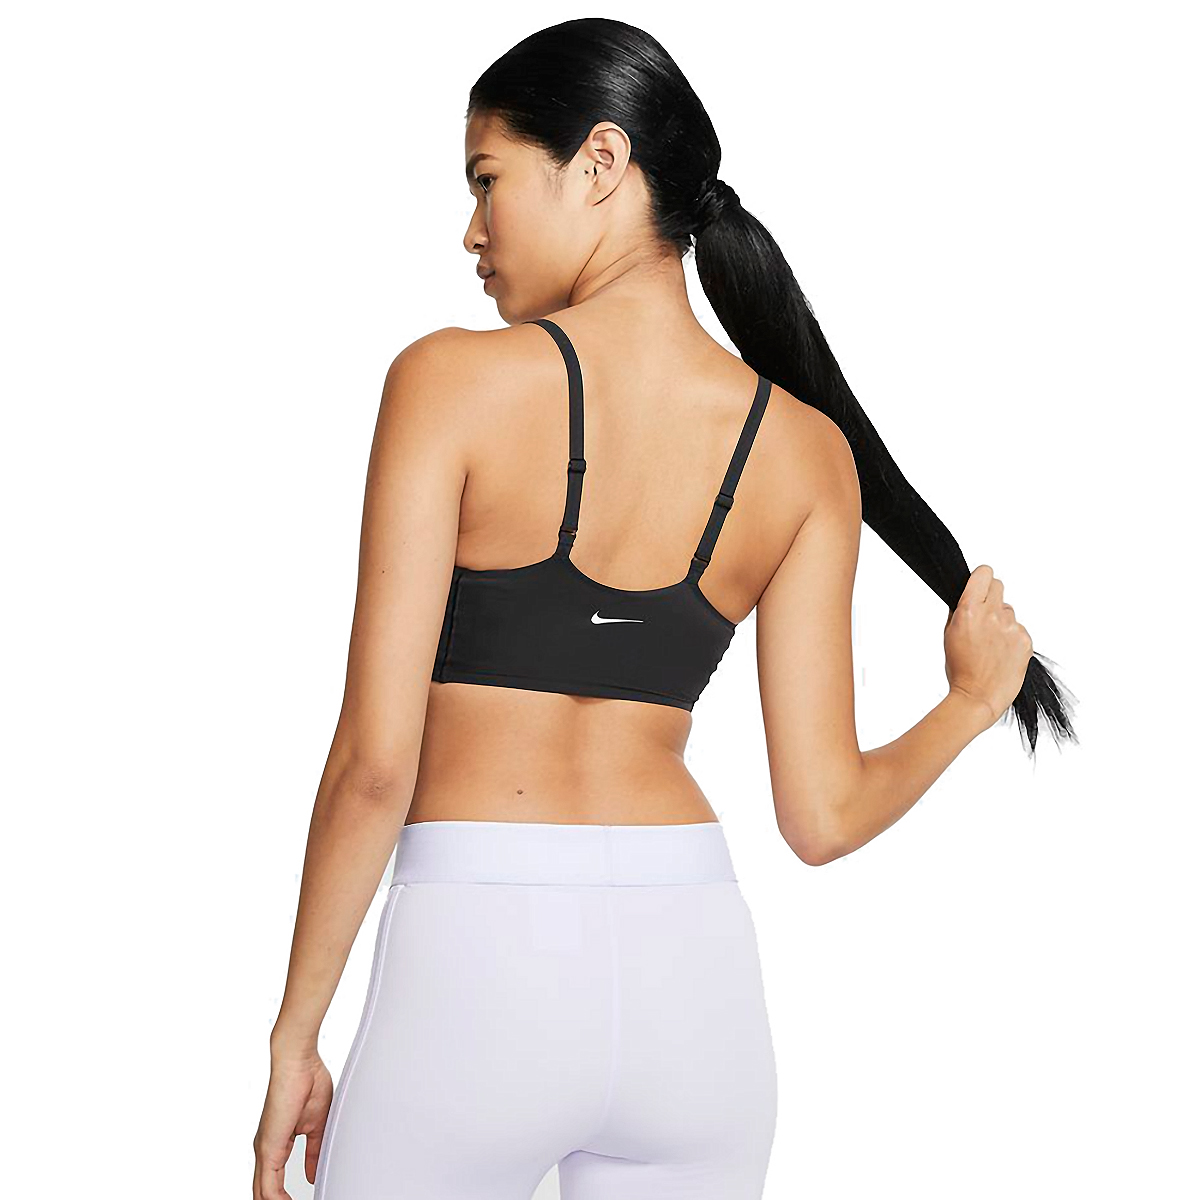 Women's Nike Indy Luxe Bra  - Color: Black/White - Size: XS, Black/White, large, image 2